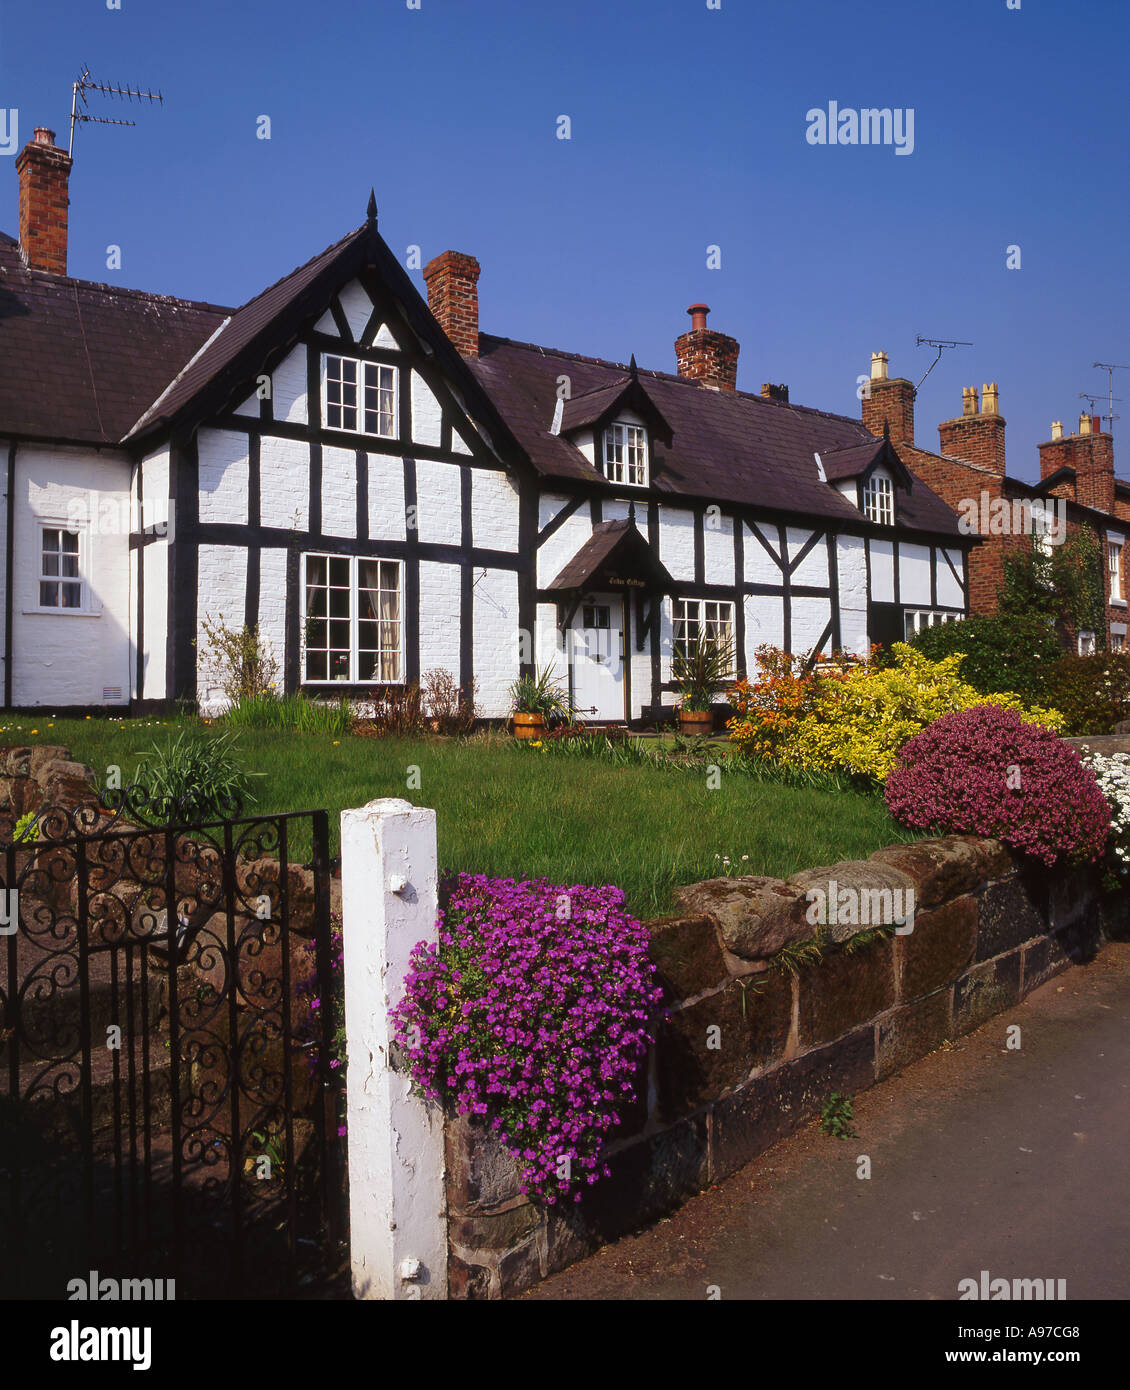 Tudor Cottage in Spring, Village of Tattenall, Central Cheshire, England, UK - Stock Image